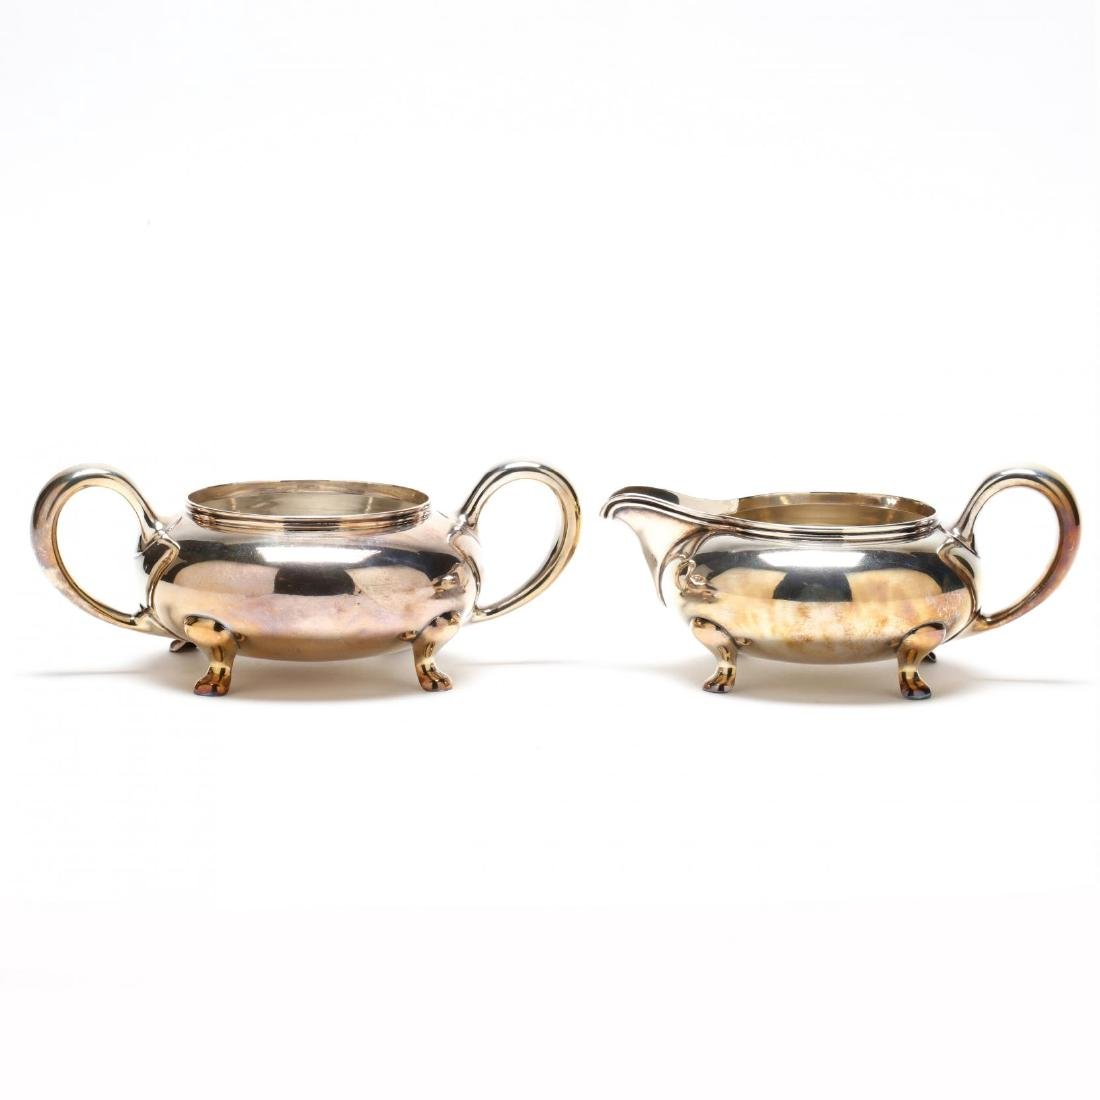 Towle Sterling Silver Tea & Coffee Service - 8